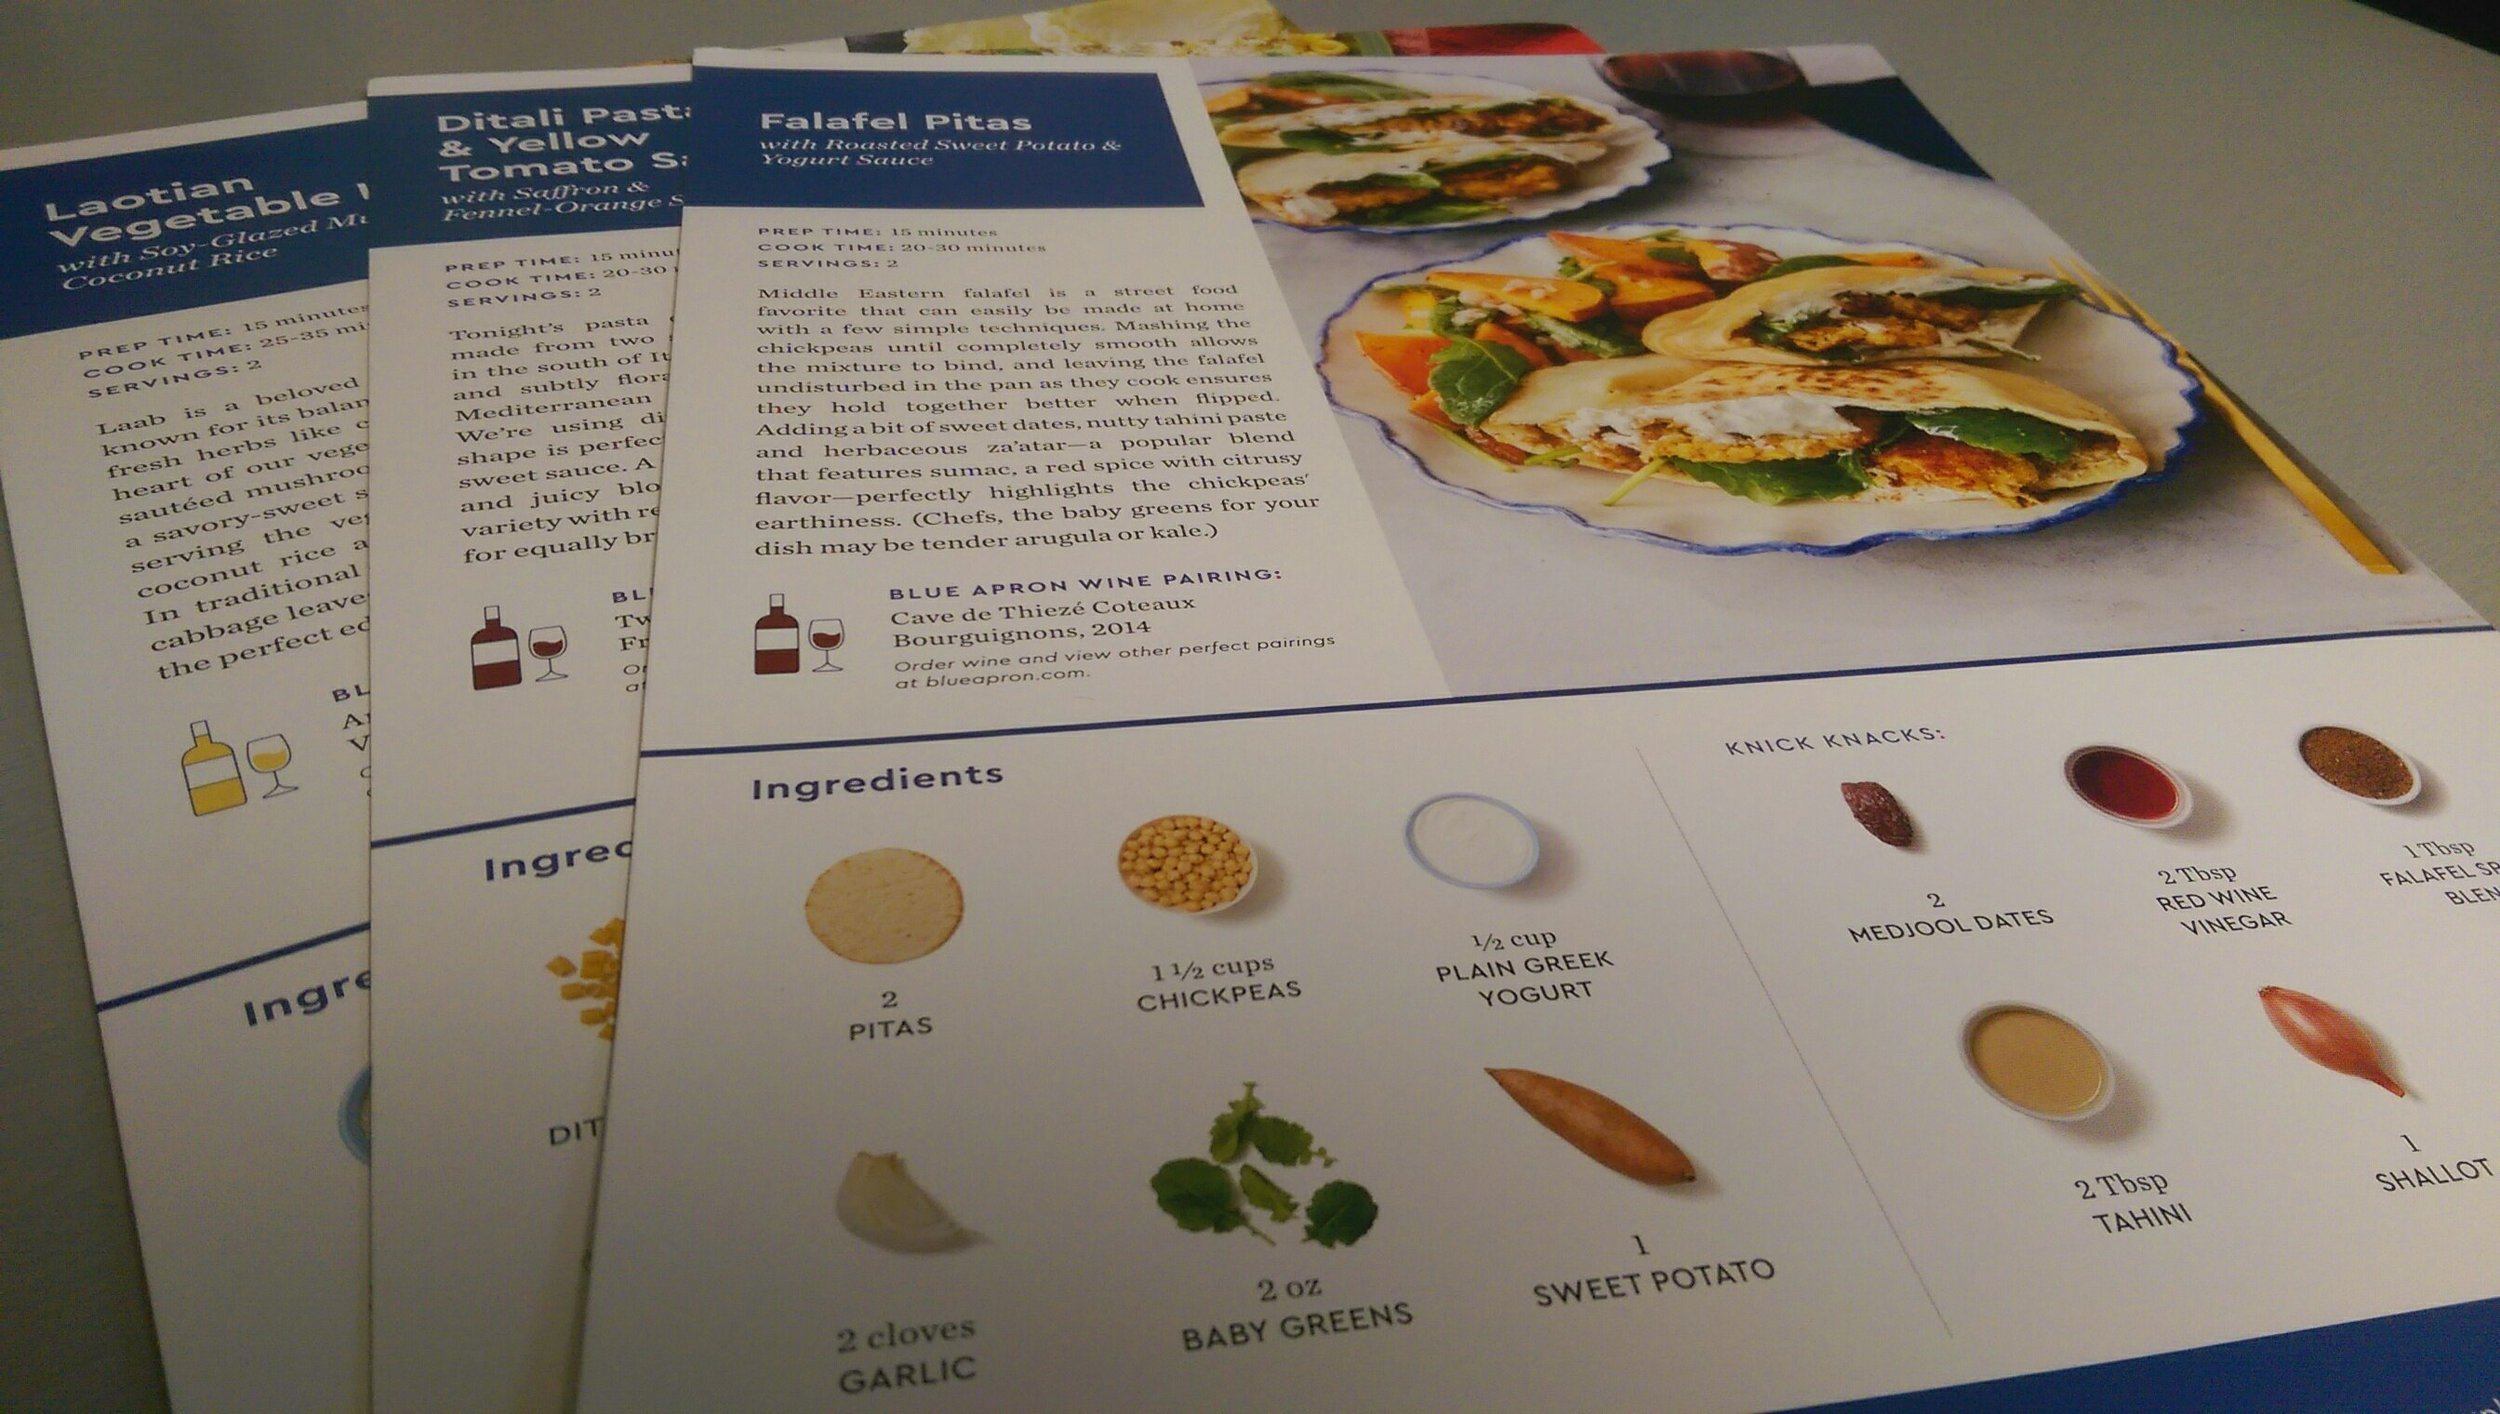 Recipe Cards for Blue Apron